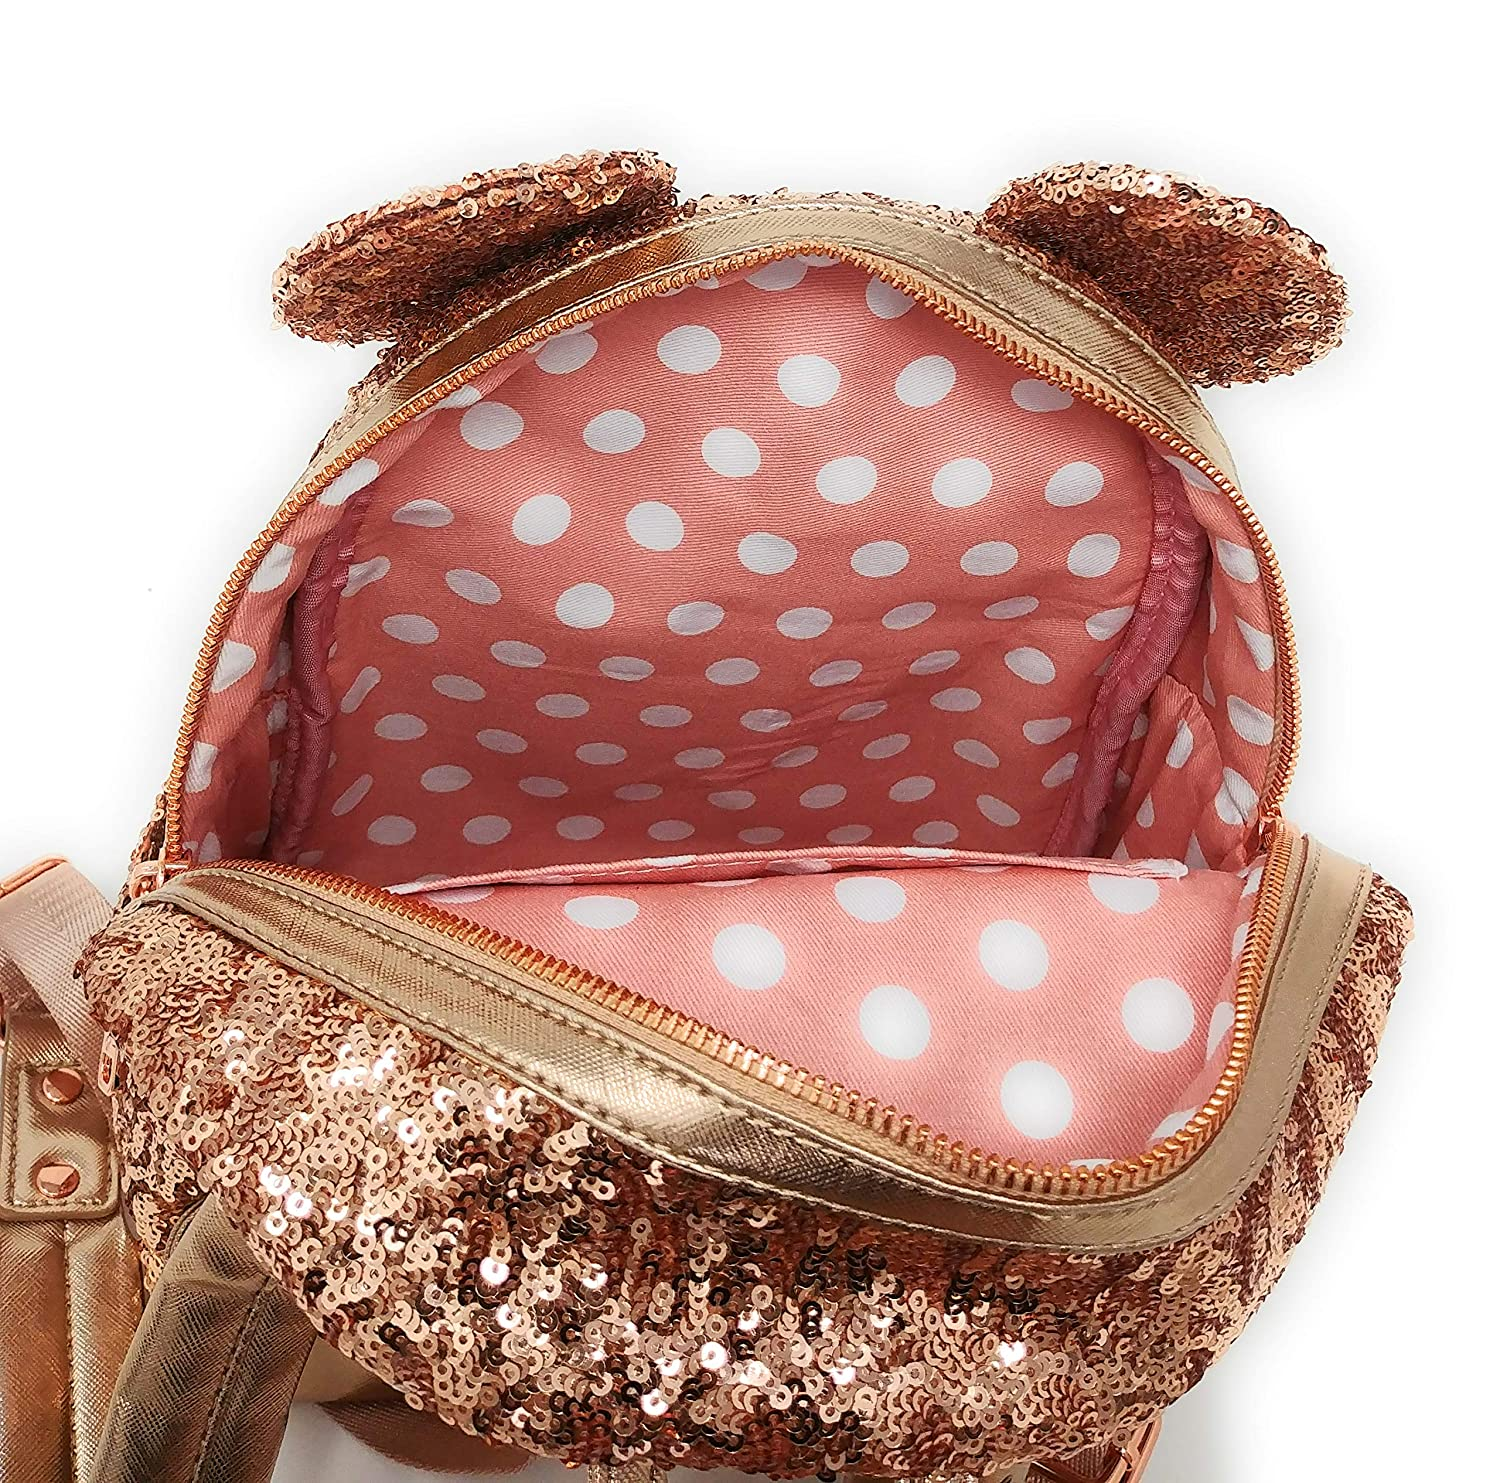 Disney Loungefly Rose Gold Backpack Sold Out Hard To Find Last One New Minnie Mouse Rose Gold Ears Disney Park